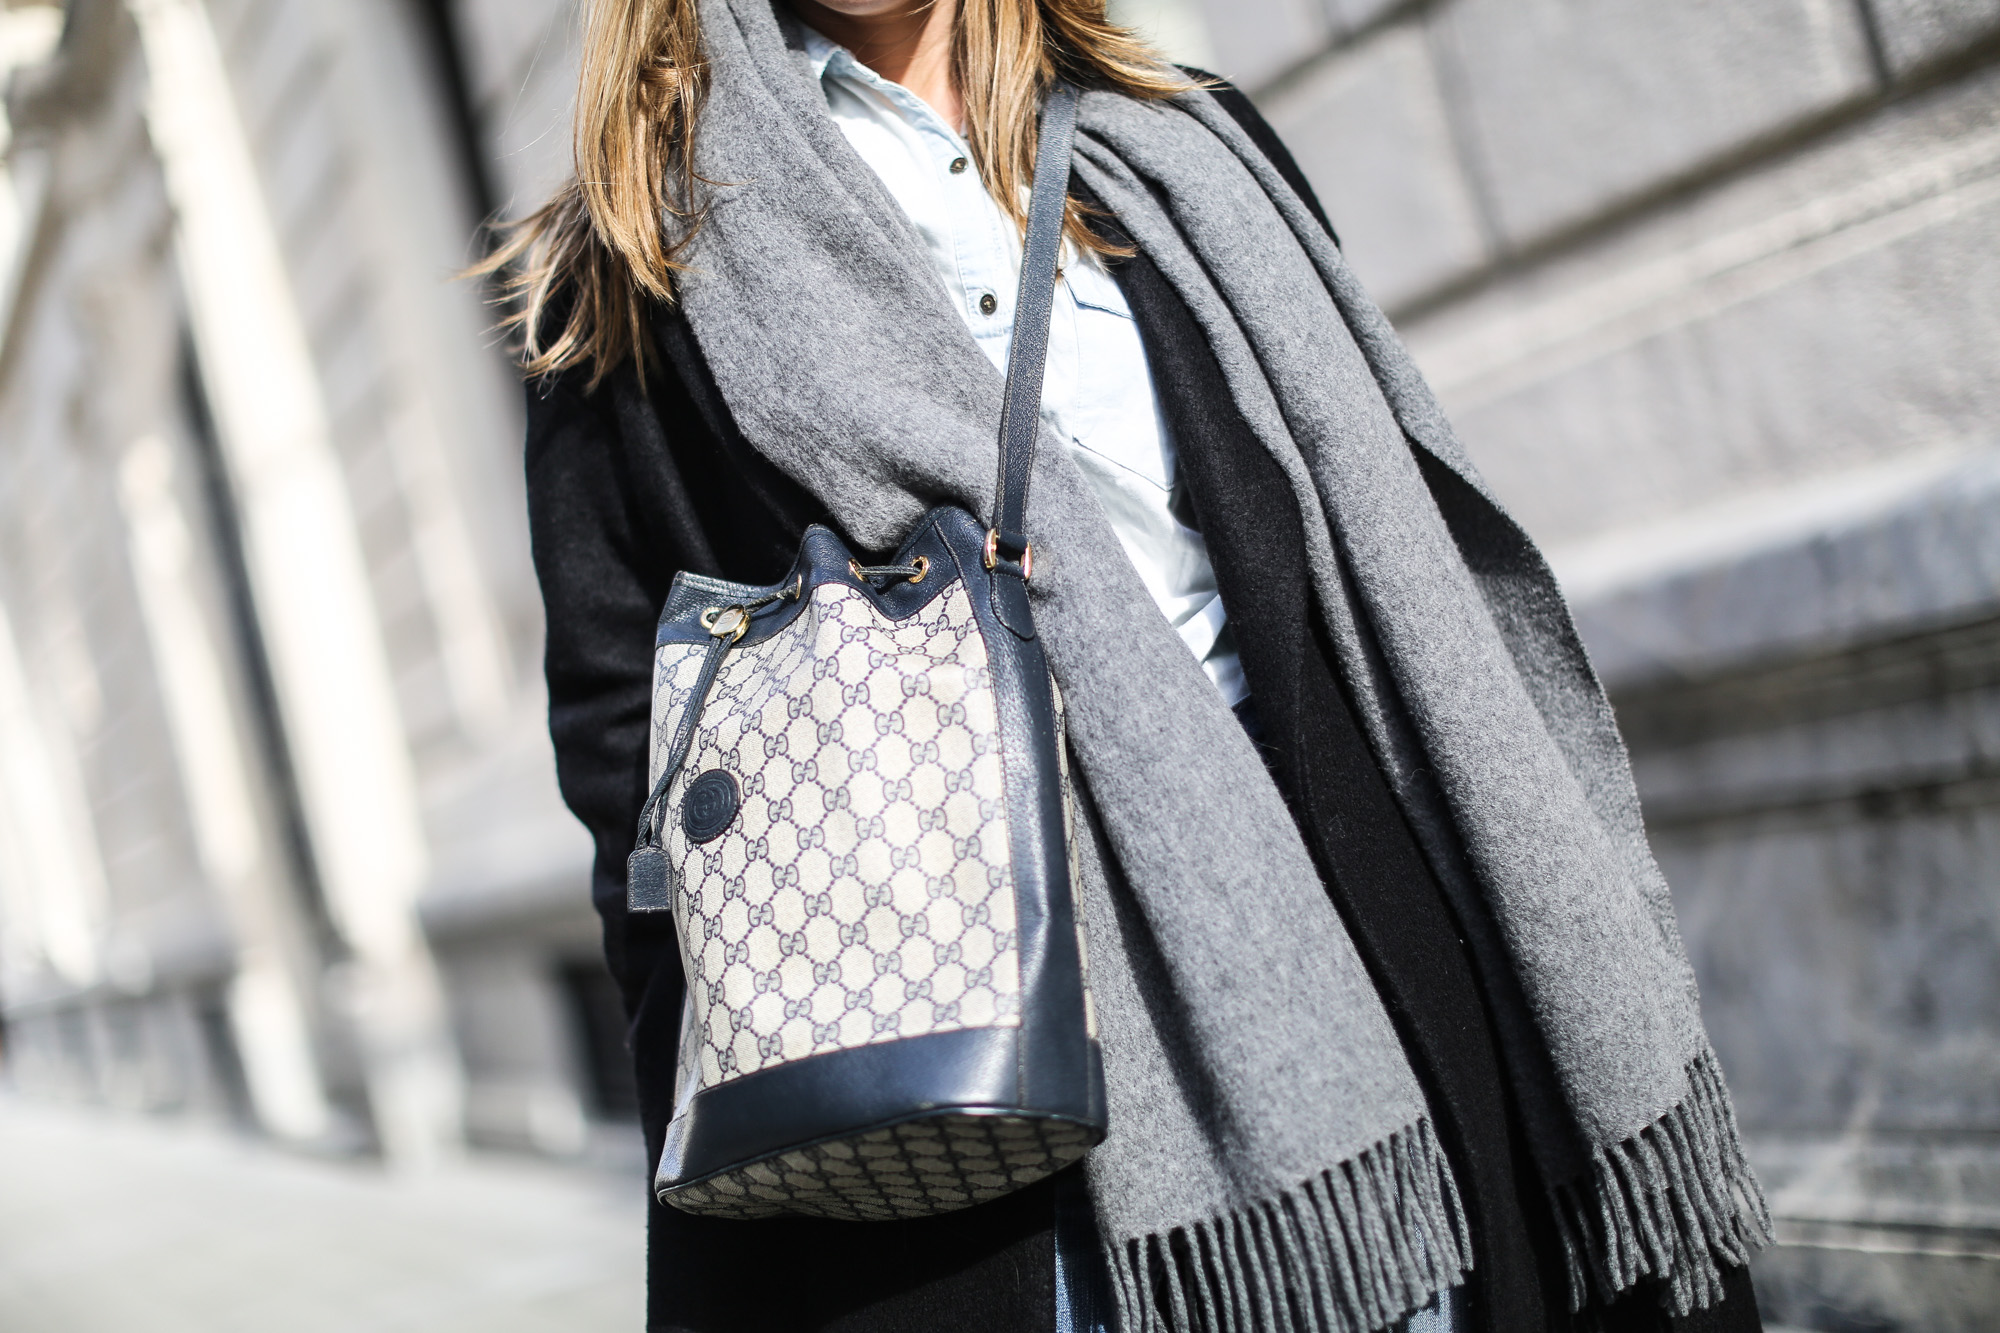 clochet_streetstyle_gucci_bucket_bag_levis_501_vintage_cos_long_coat-10